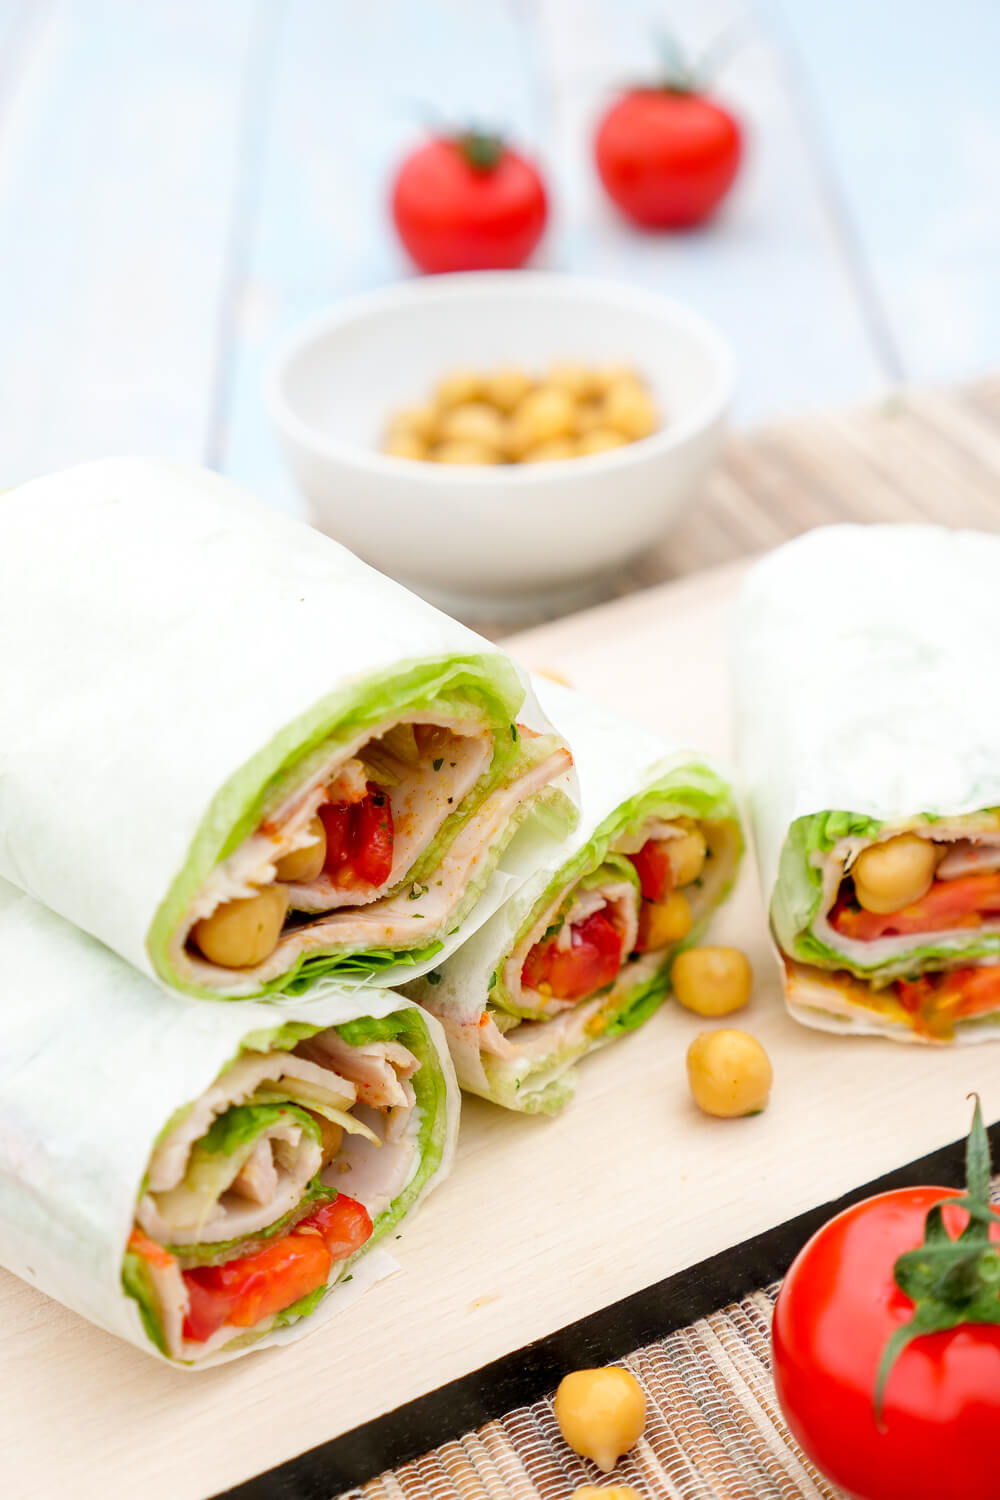 Low Carb Wraps mit Kichererbsen, Tomaten, Putenaufstrich und Curry - der gesunde Low Carb Snack